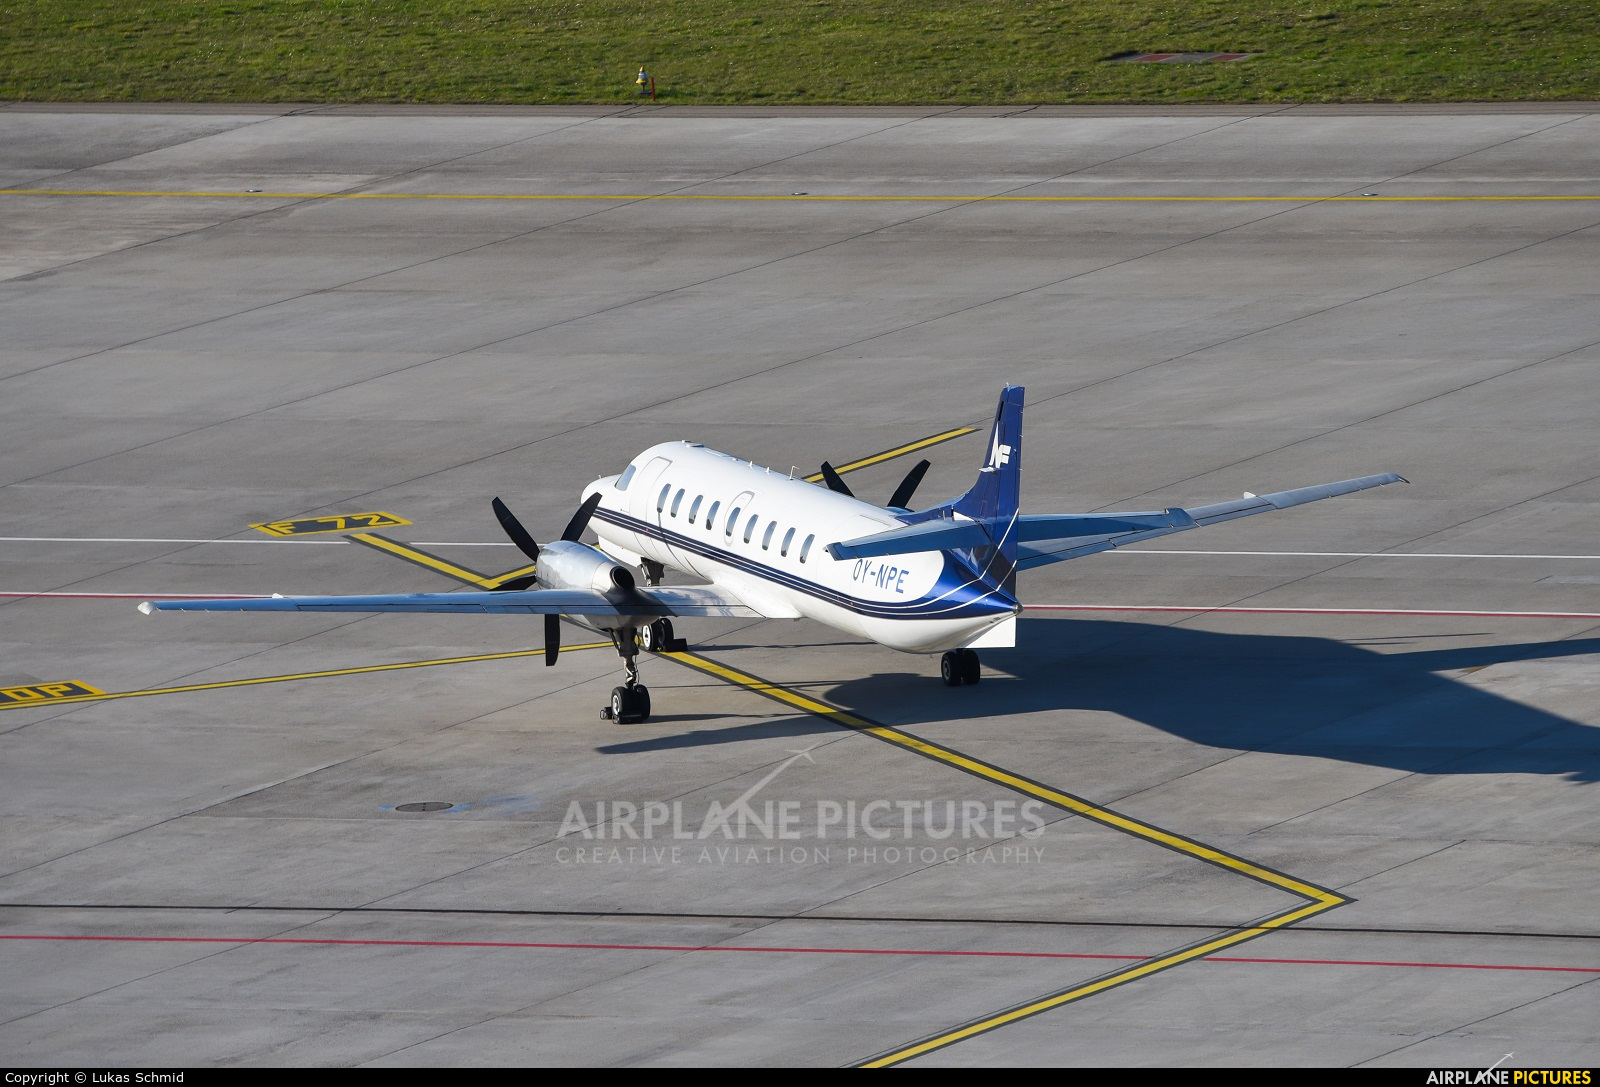 North Flying OY-NPE aircraft at Zurich